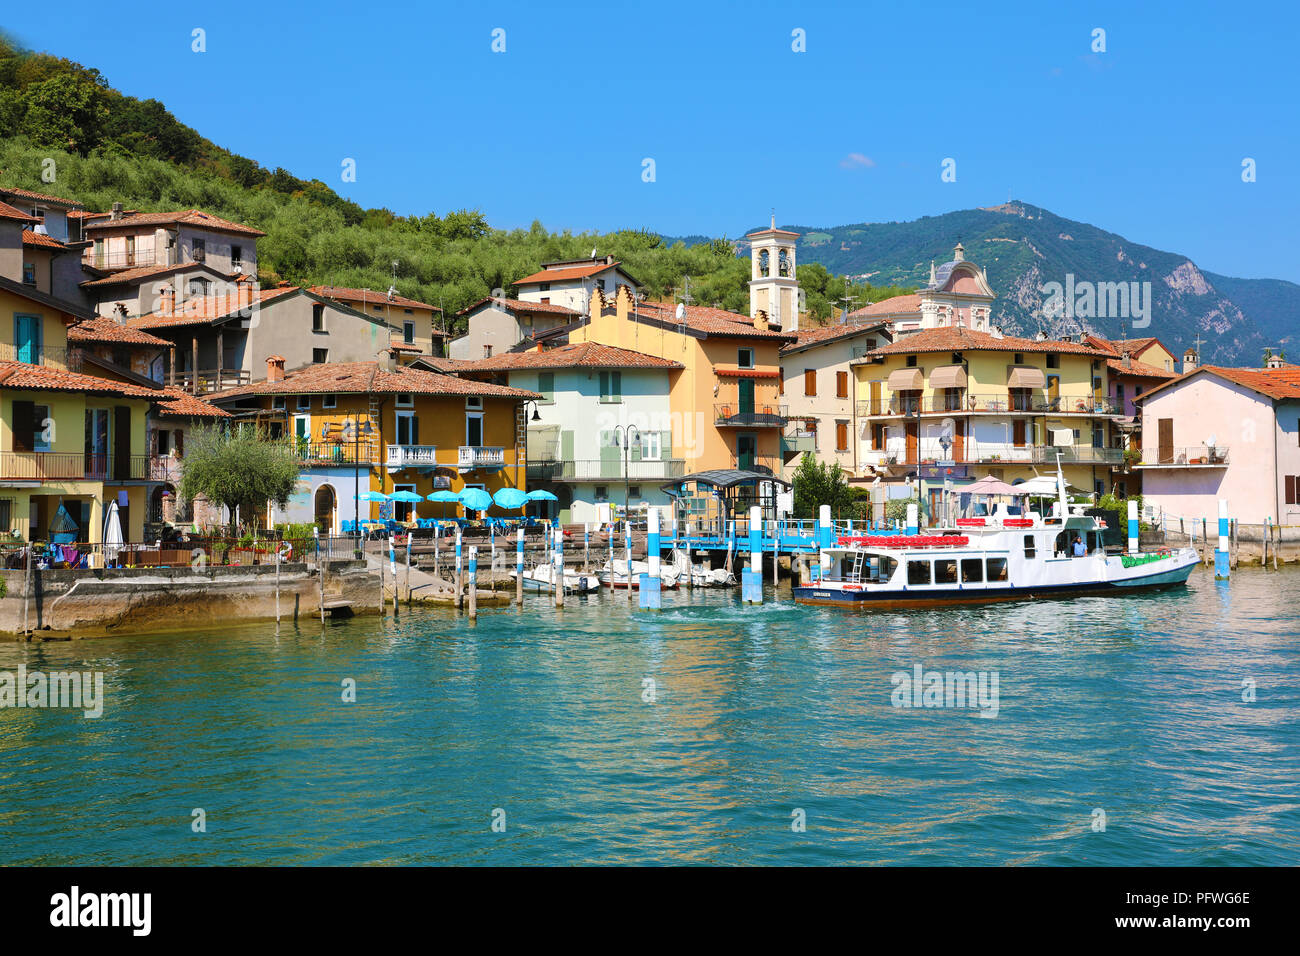 MONTE ISOLA, ITALY - AUGUST 20, 2018: view of the small village of Carzano on Monte Isola island in the middle of Lake Iseo, Italy Stock Photo